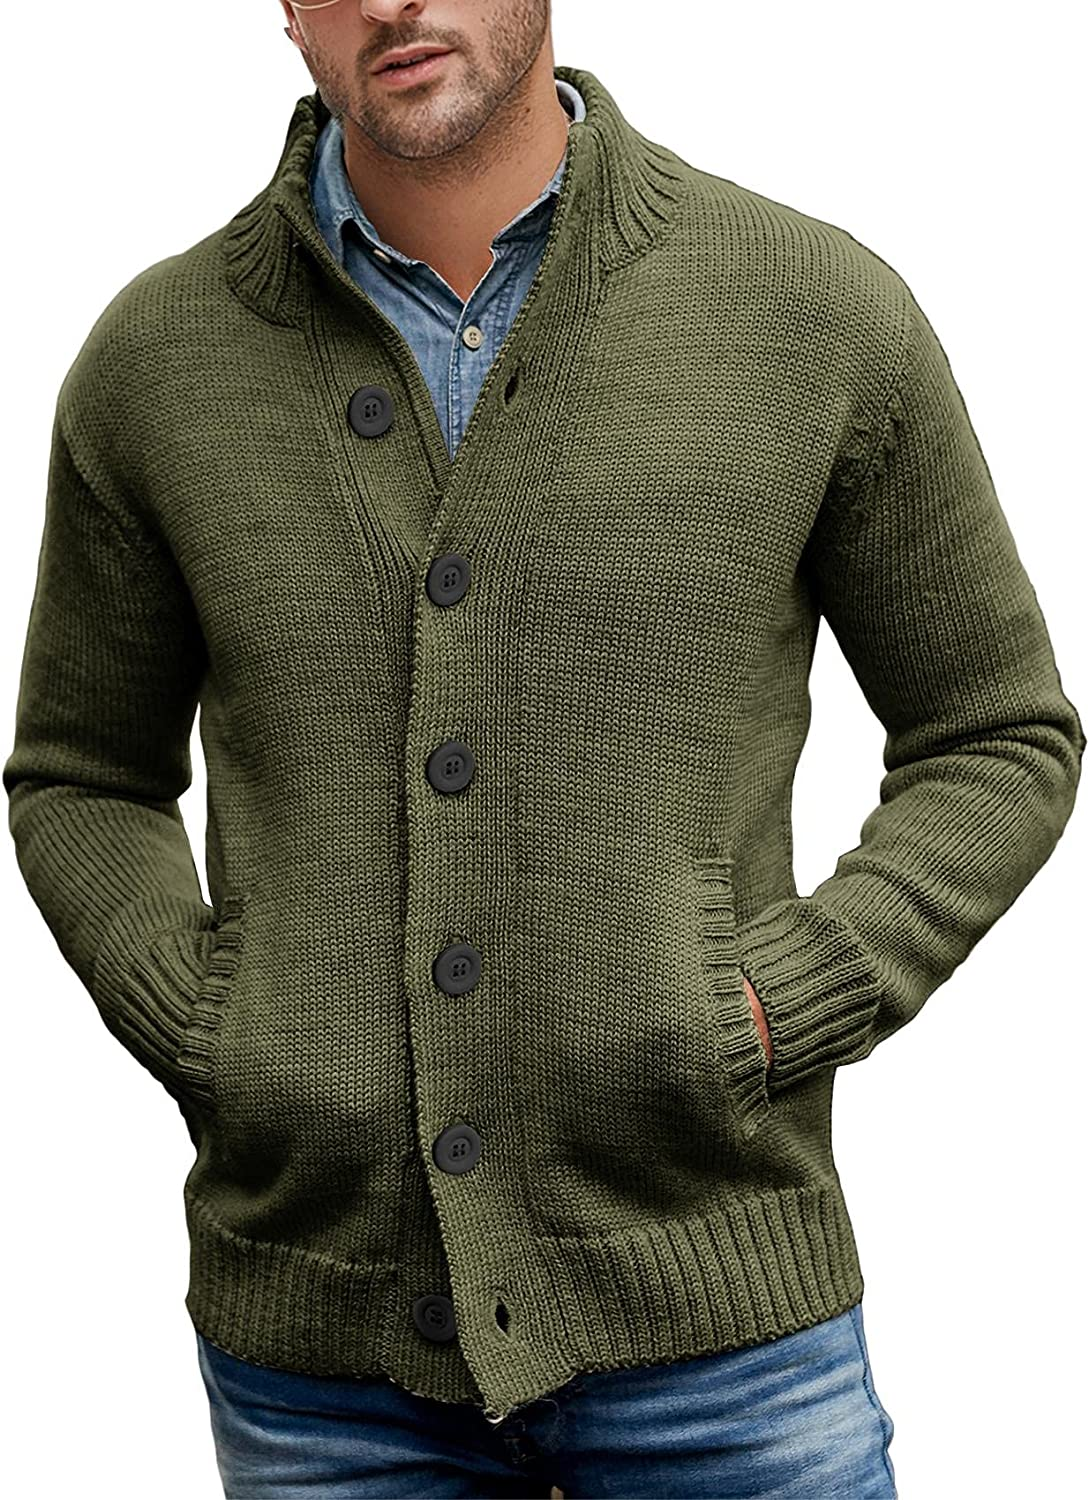 Angeun Mens Stand Collar Cardigan Sweater Long Sleeve Button Down Regular Fit Cable Knitted Outwear with Two Pockets